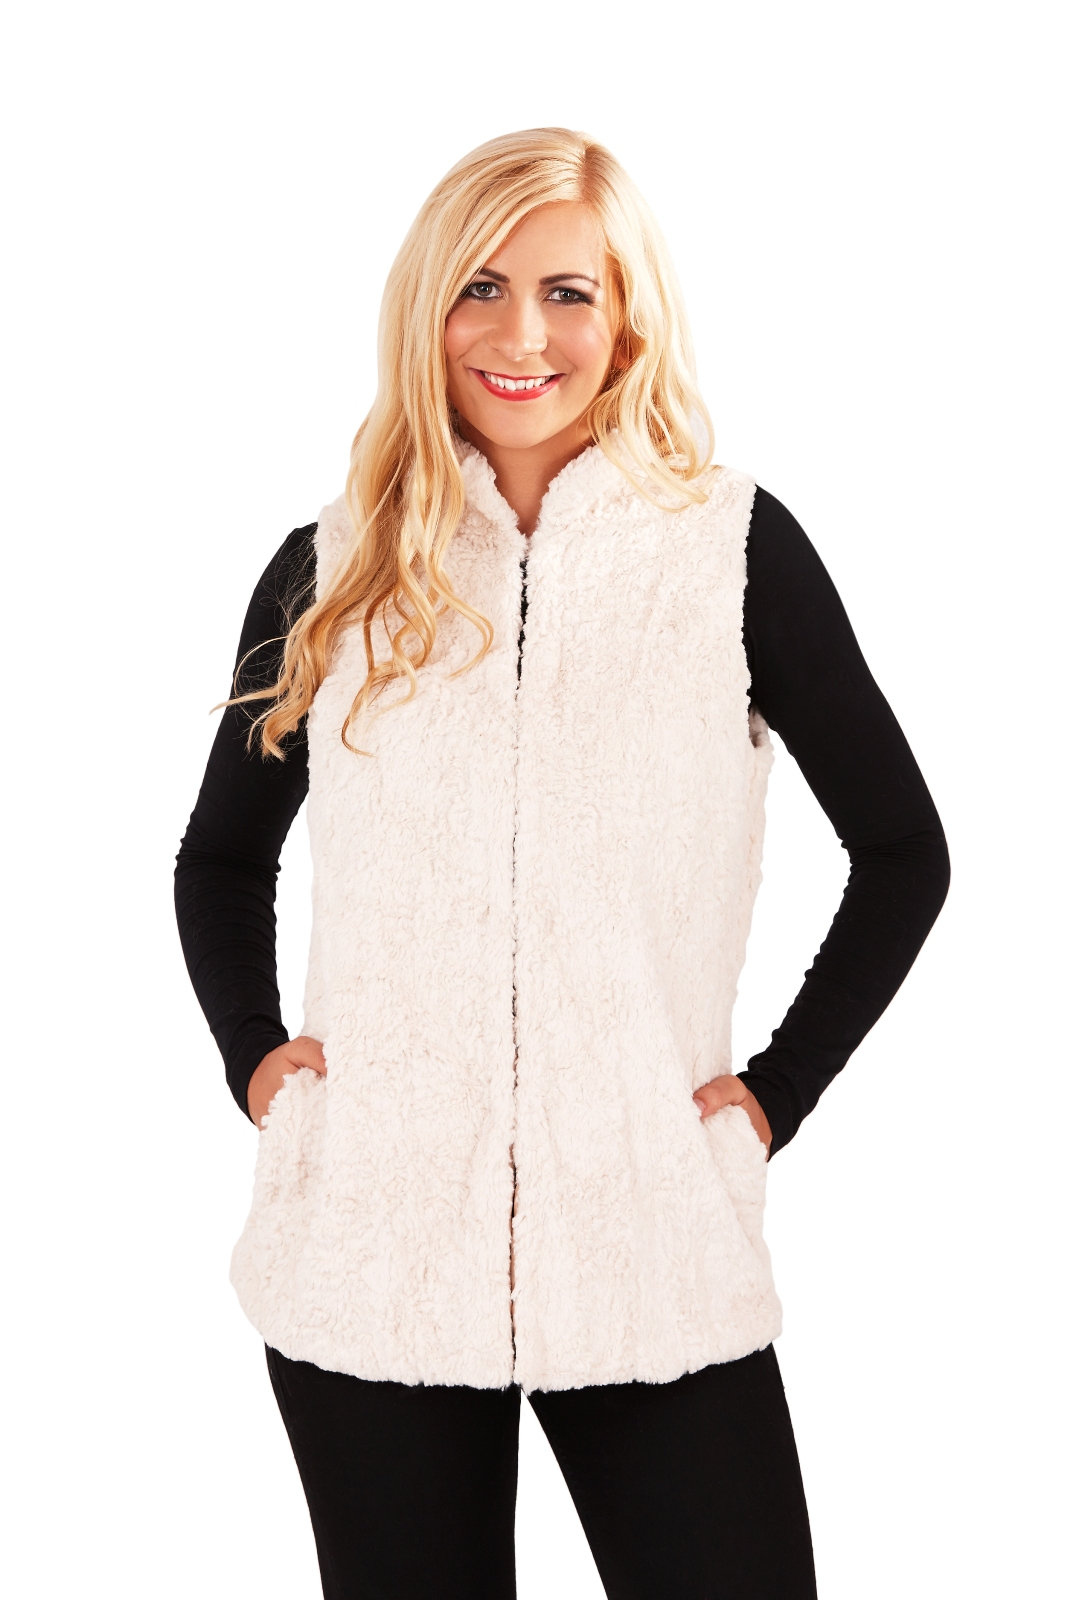 View all ladies clothing Our selection of ladies gilets are ideal for adding style and warmth to any outfit. Featuring quilted and insulated designs as well as padded and fleece gilets, we have a wide variety of choices available.